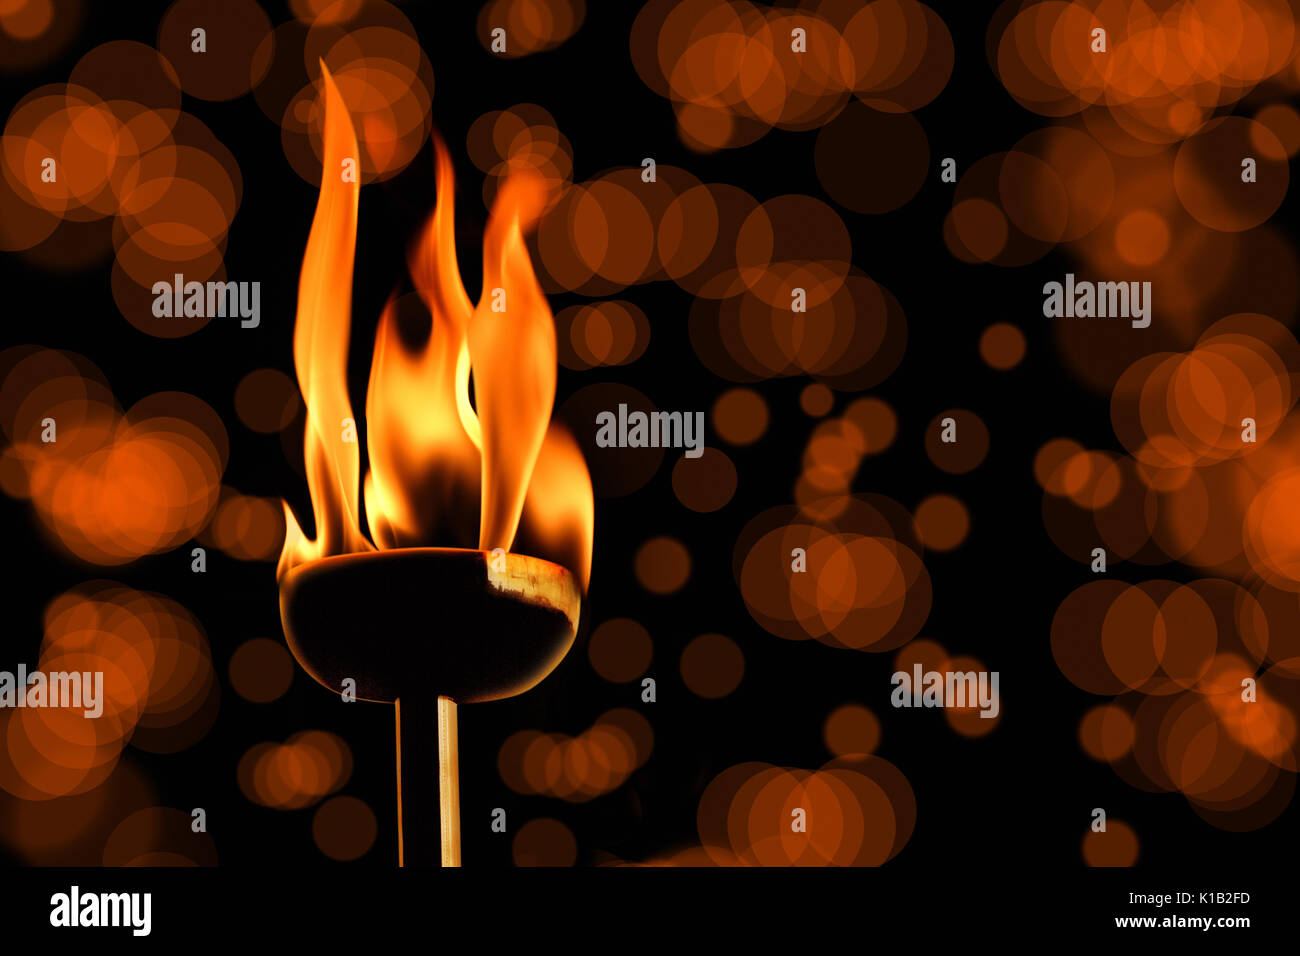 close up shot of burning flaming torch. Stock Photo